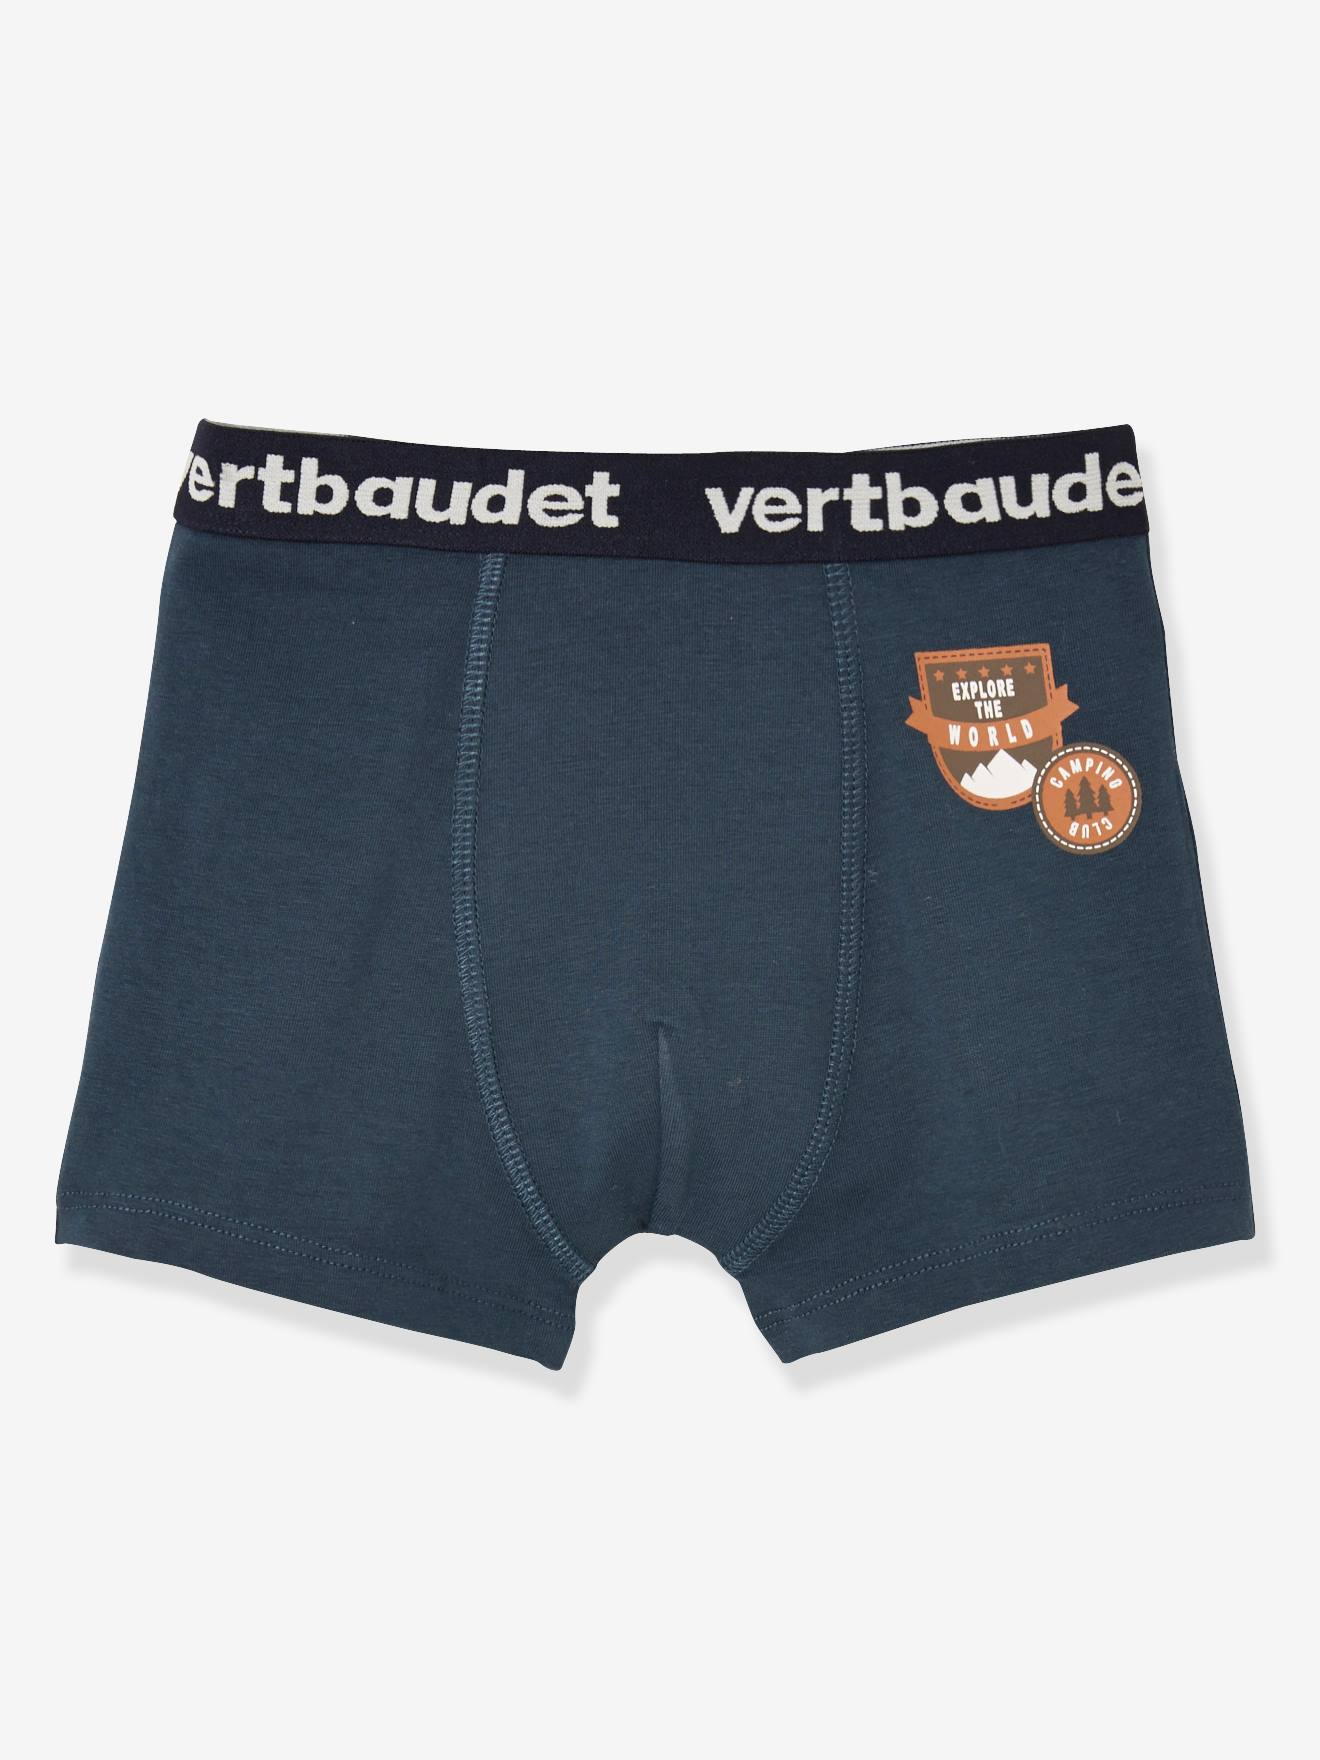 Exclusif Lot de 3 boxers stretch garçon Camper lot bleu nuit PZnOy